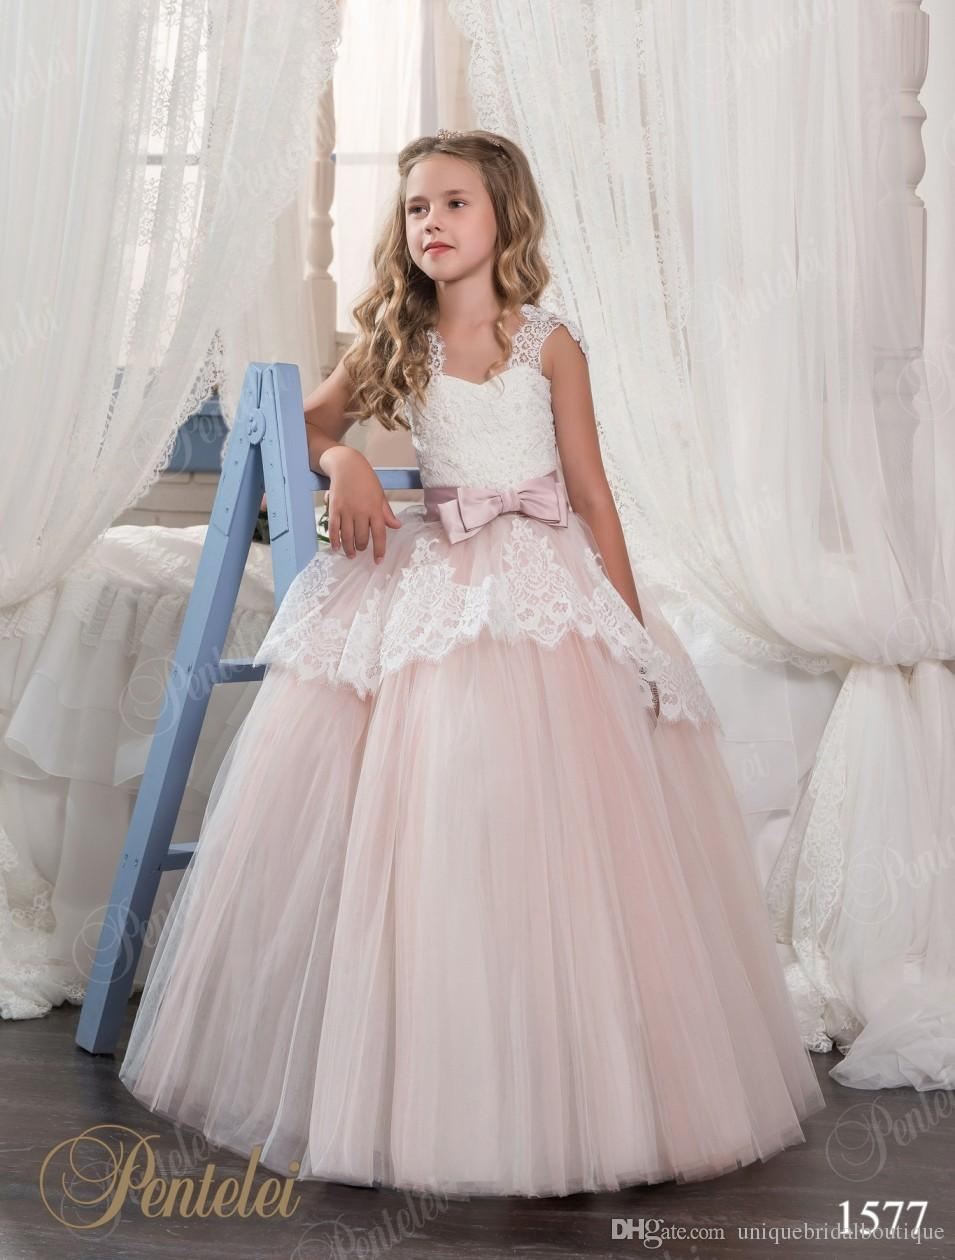 Beach Wedding Attire for Female Guests. Below is a collection of beautiful beach wedding dresses for guests. We love all of these dresses because they are the ideal length, colors, and fabrics to keep you looking and feeling great as a beach wedding guest.